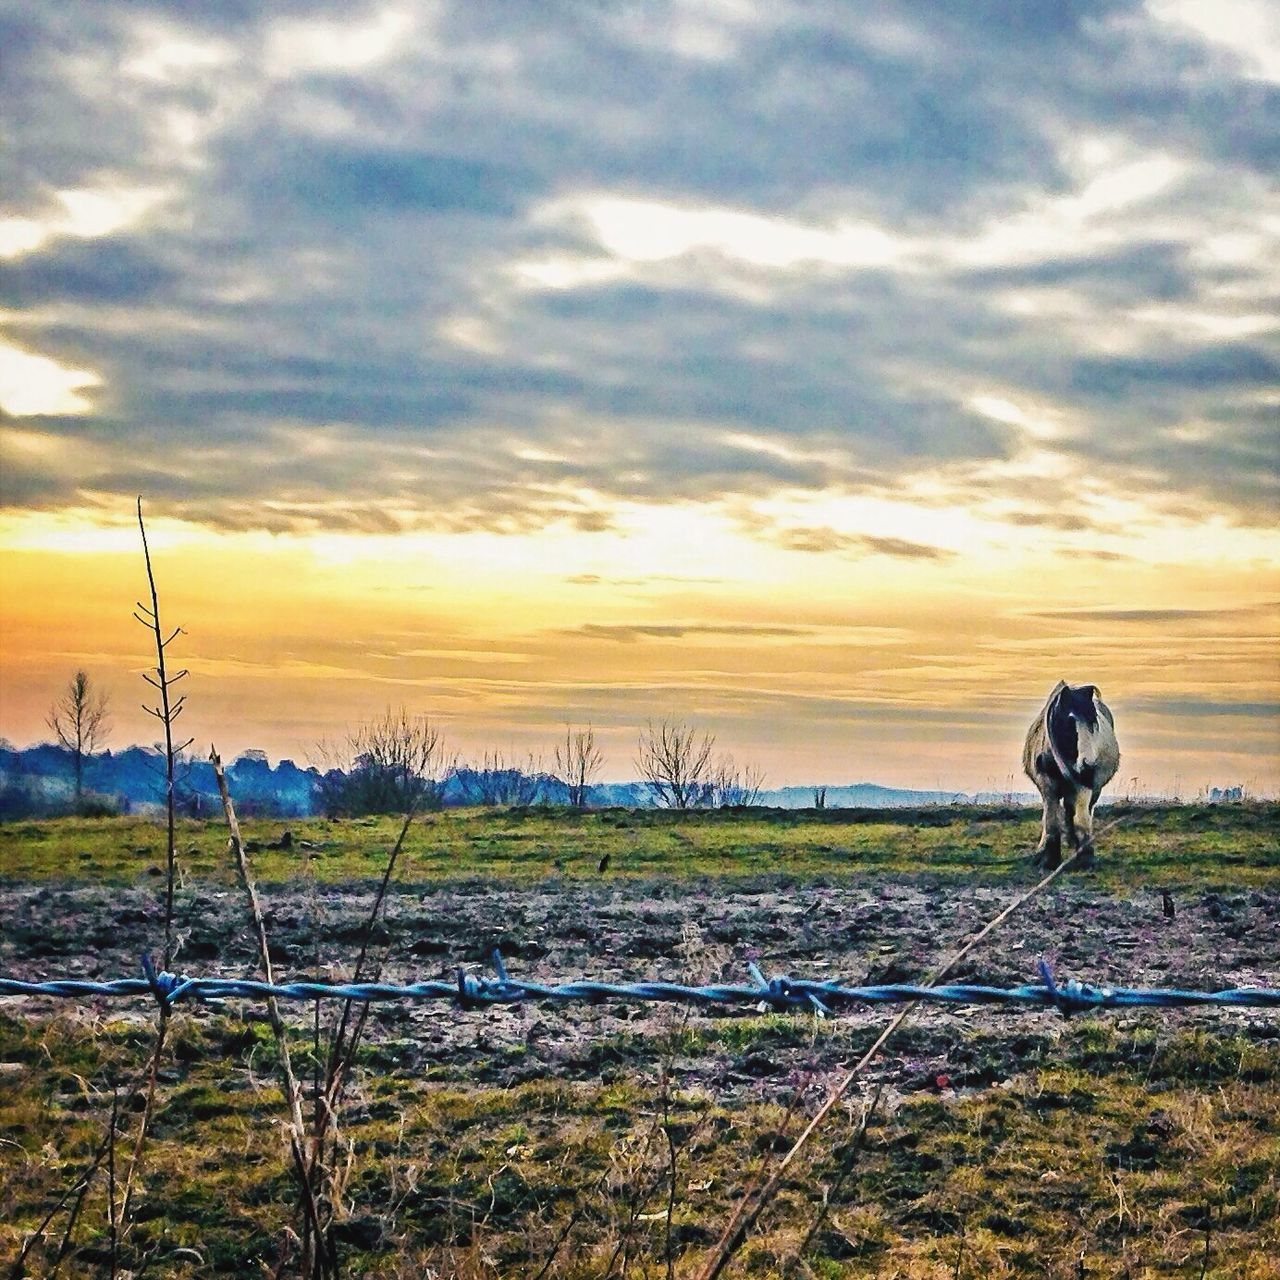 sunset, nature, sky, beauty in nature, field, cloud - sky, scenics, tranquil scene, tranquility, landscape, outdoors, growth, agriculture, no people, rural scene, day, grass, animal themes, mammal